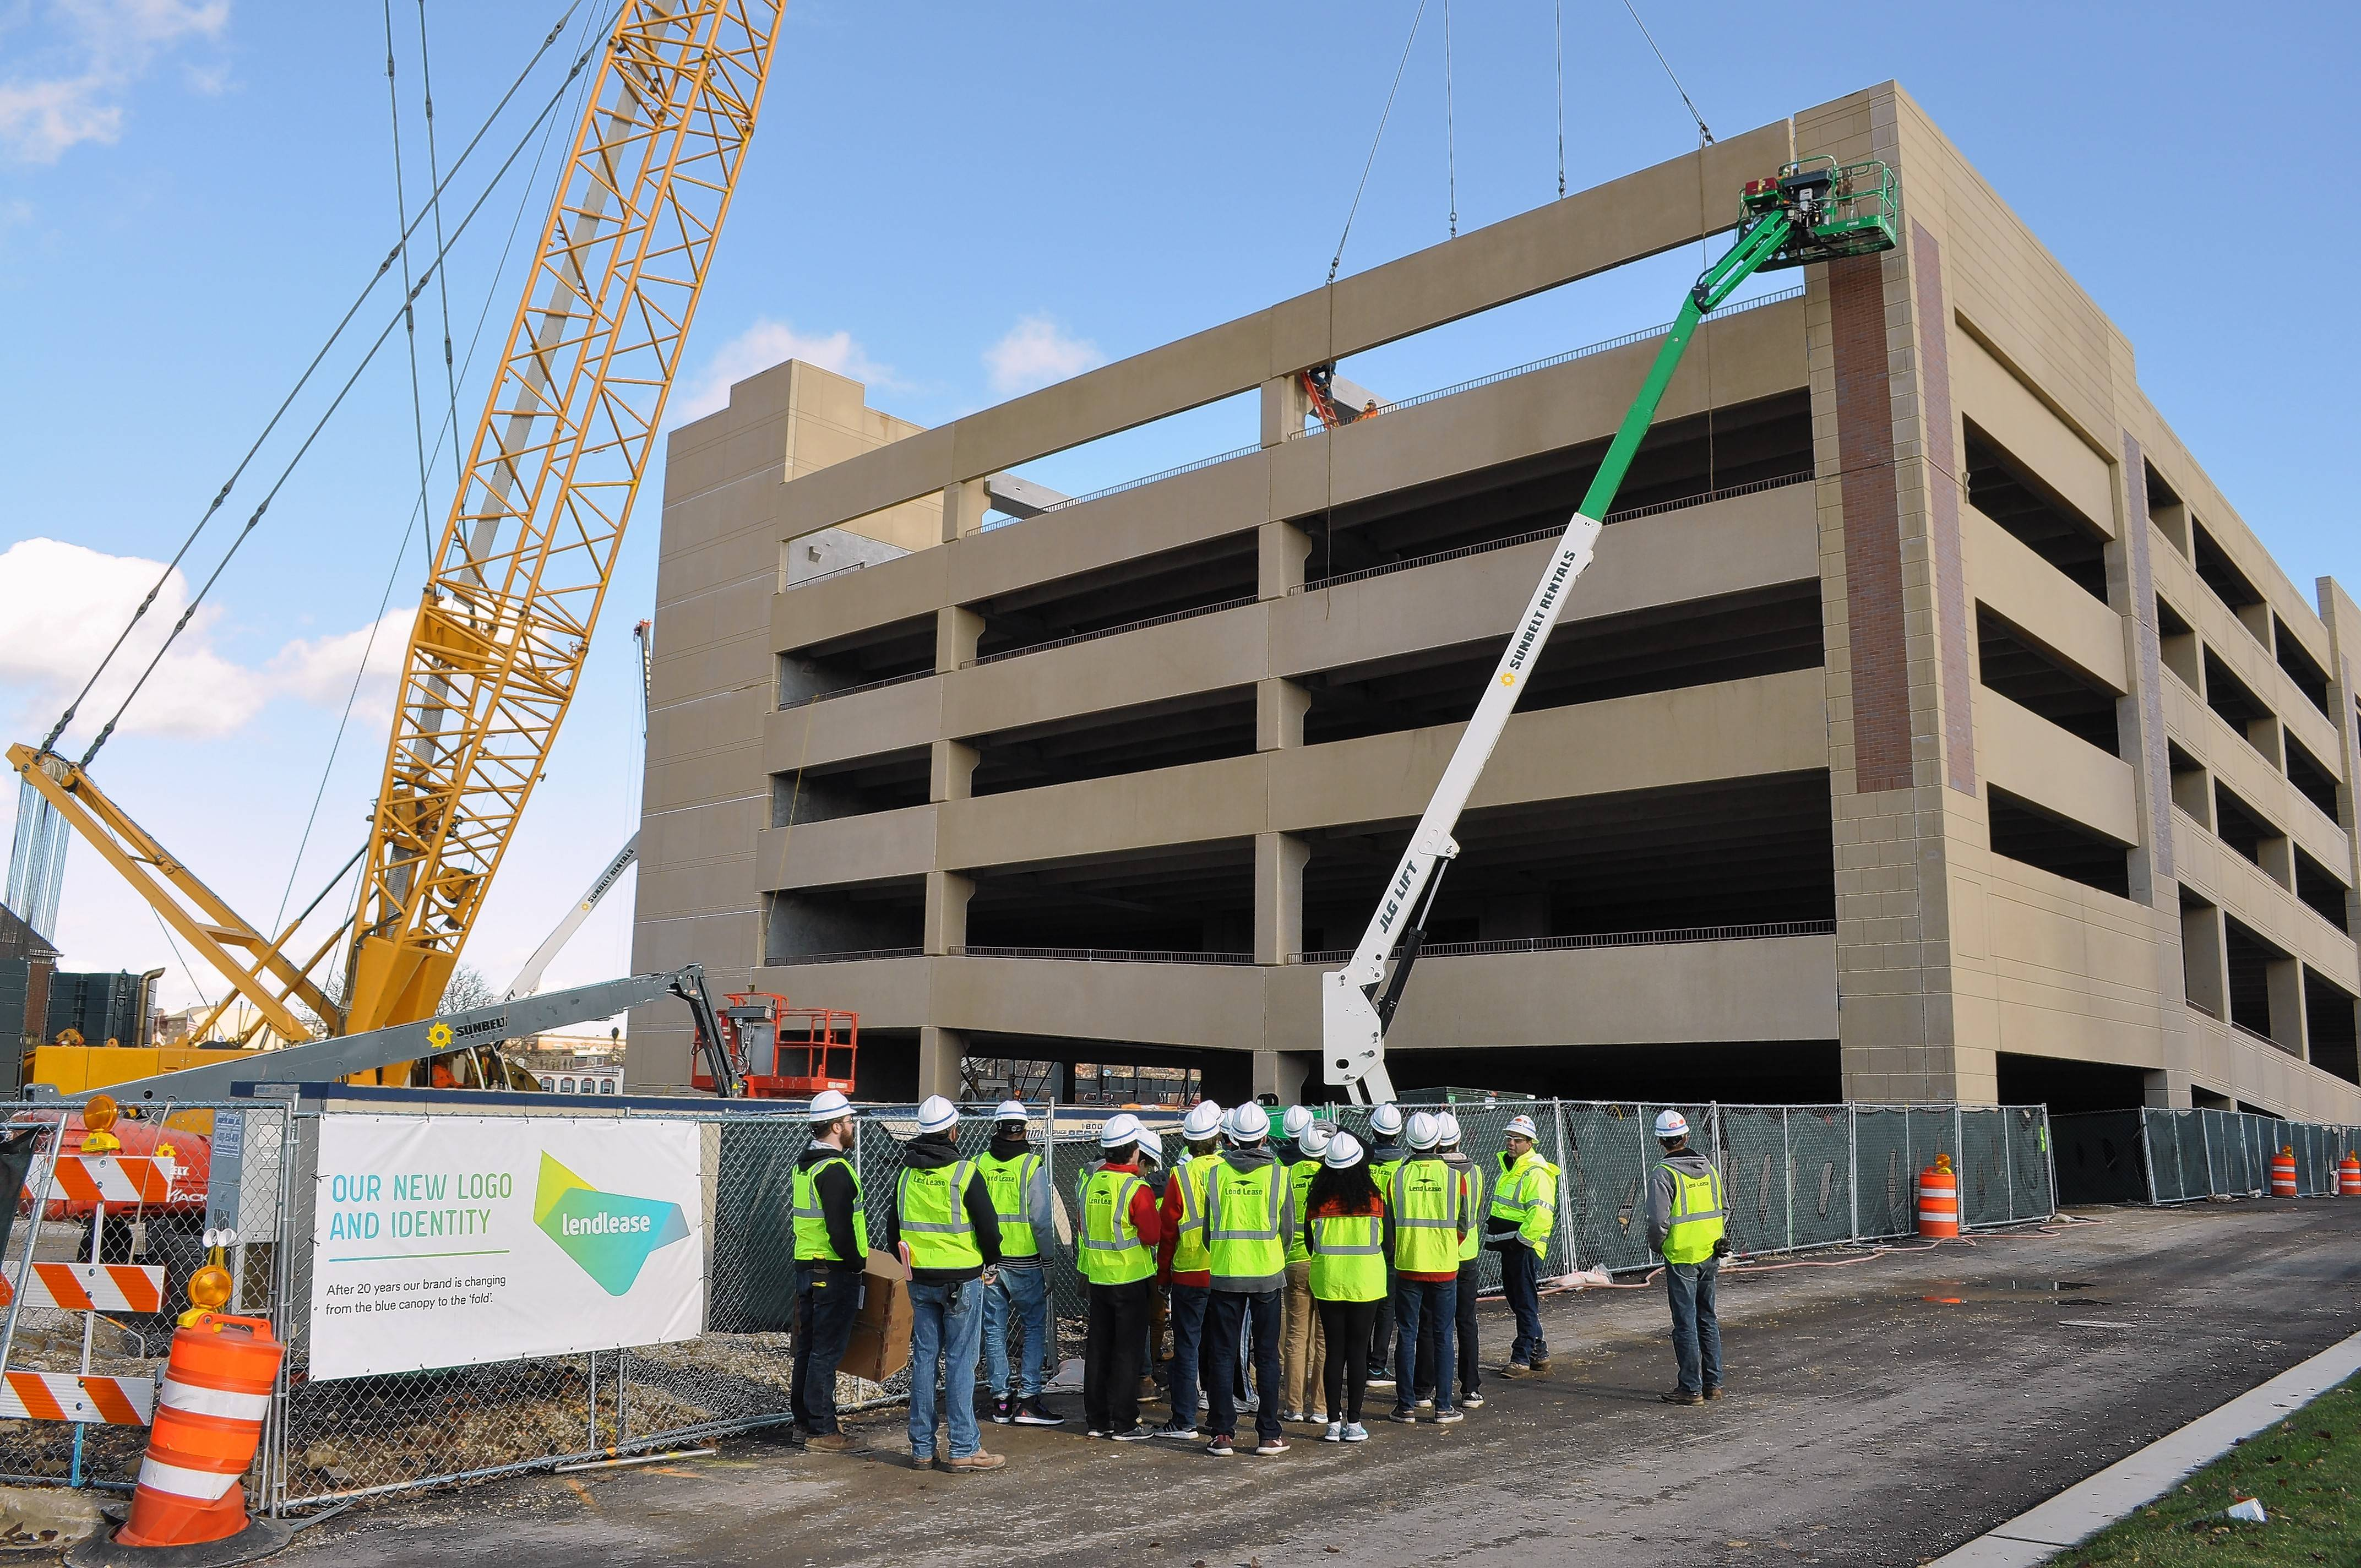 Students in architecture and engineering classes at Naperville North High School take a tour of the Water Street District construction site, where a parking garage, hotel, restaurants, shops and offices are taking shape.